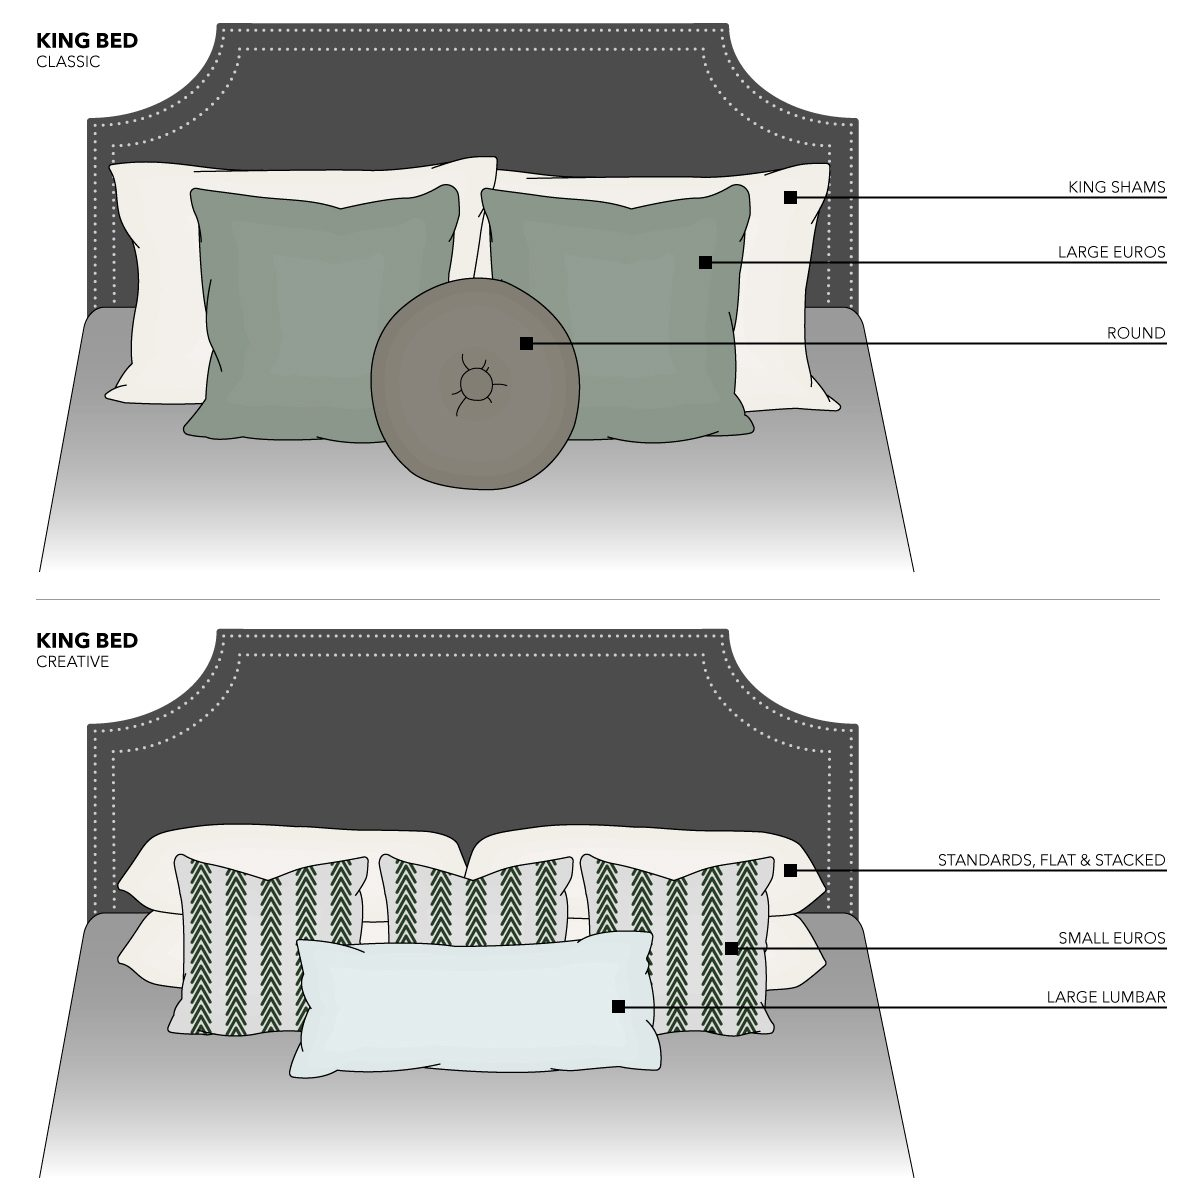 Pillow Arrangements for King Beds